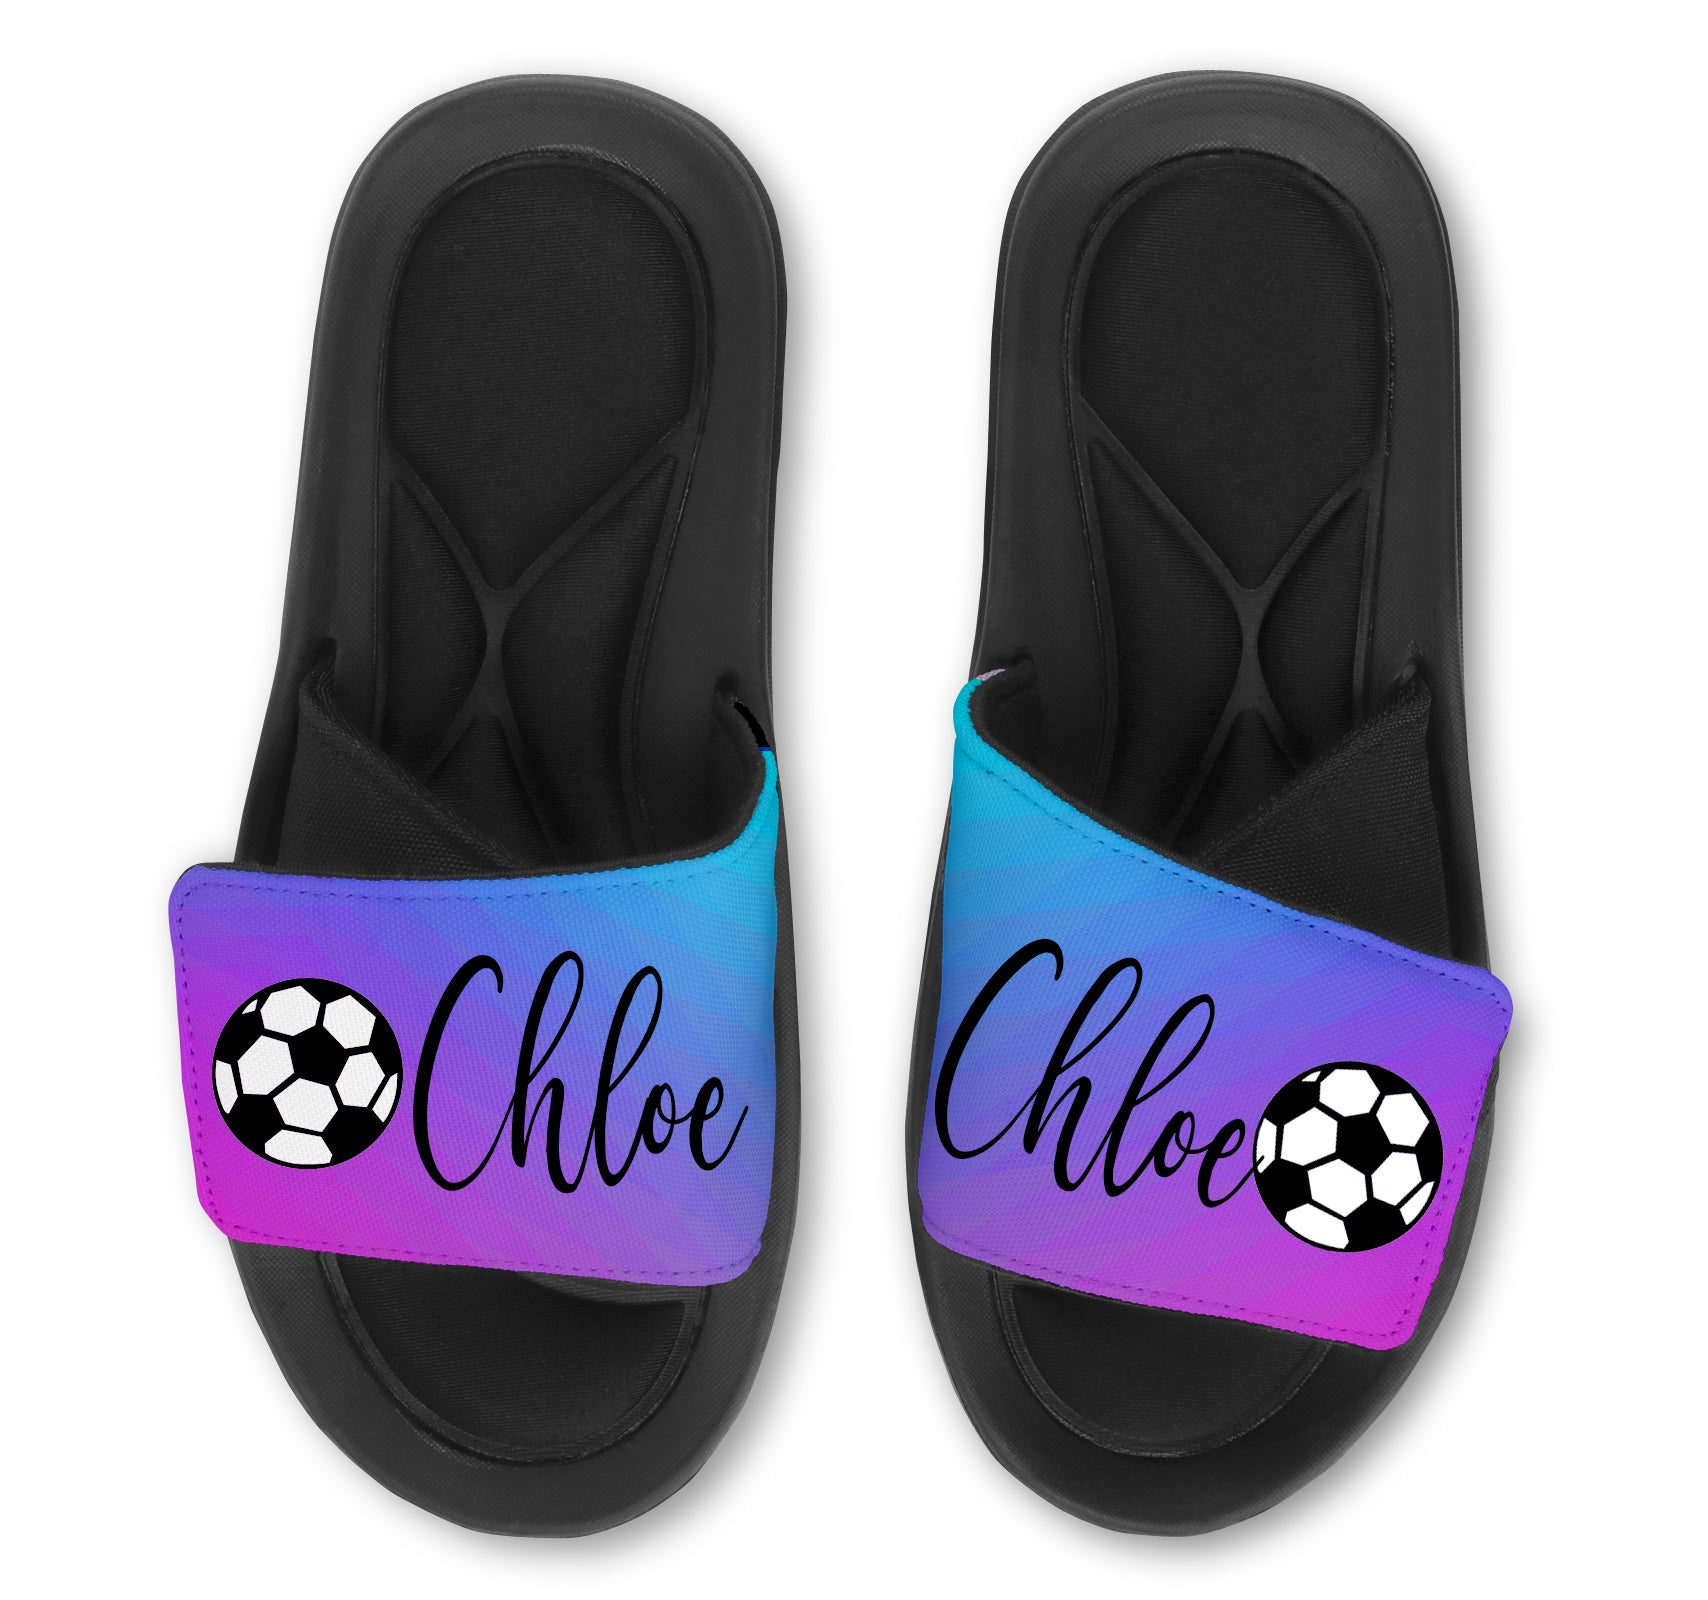 SOCCER  Abstract Custom Slides / Sandals - Choose your Background!